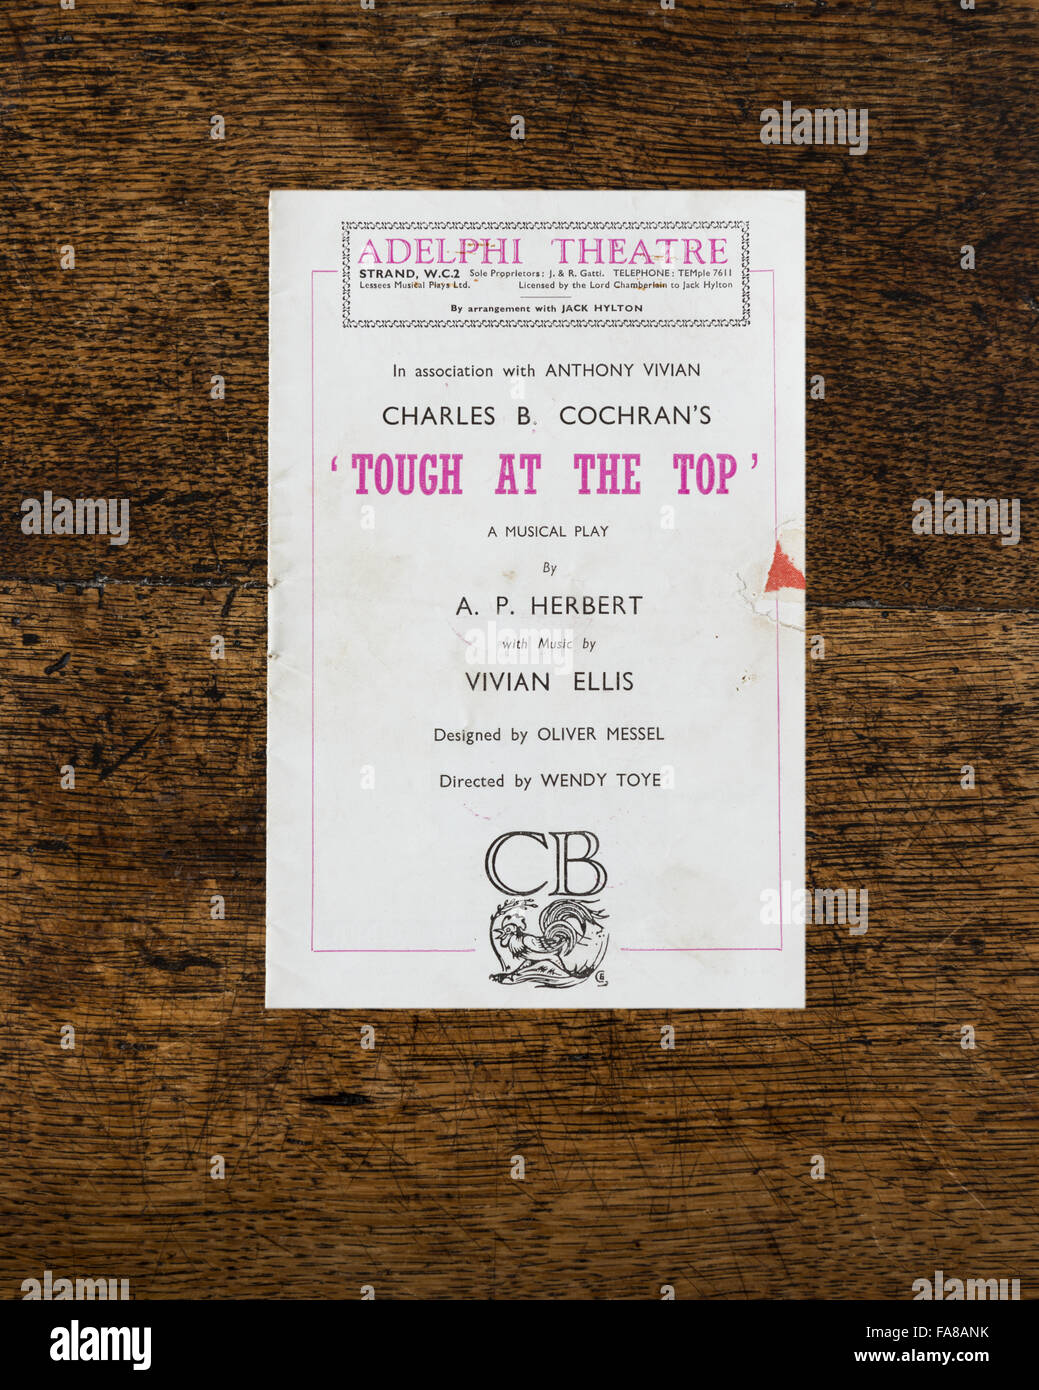 Theatre programme for the 1949 production of Charles B. Cochran's play 'Tough At The Top', from the - Stock Image